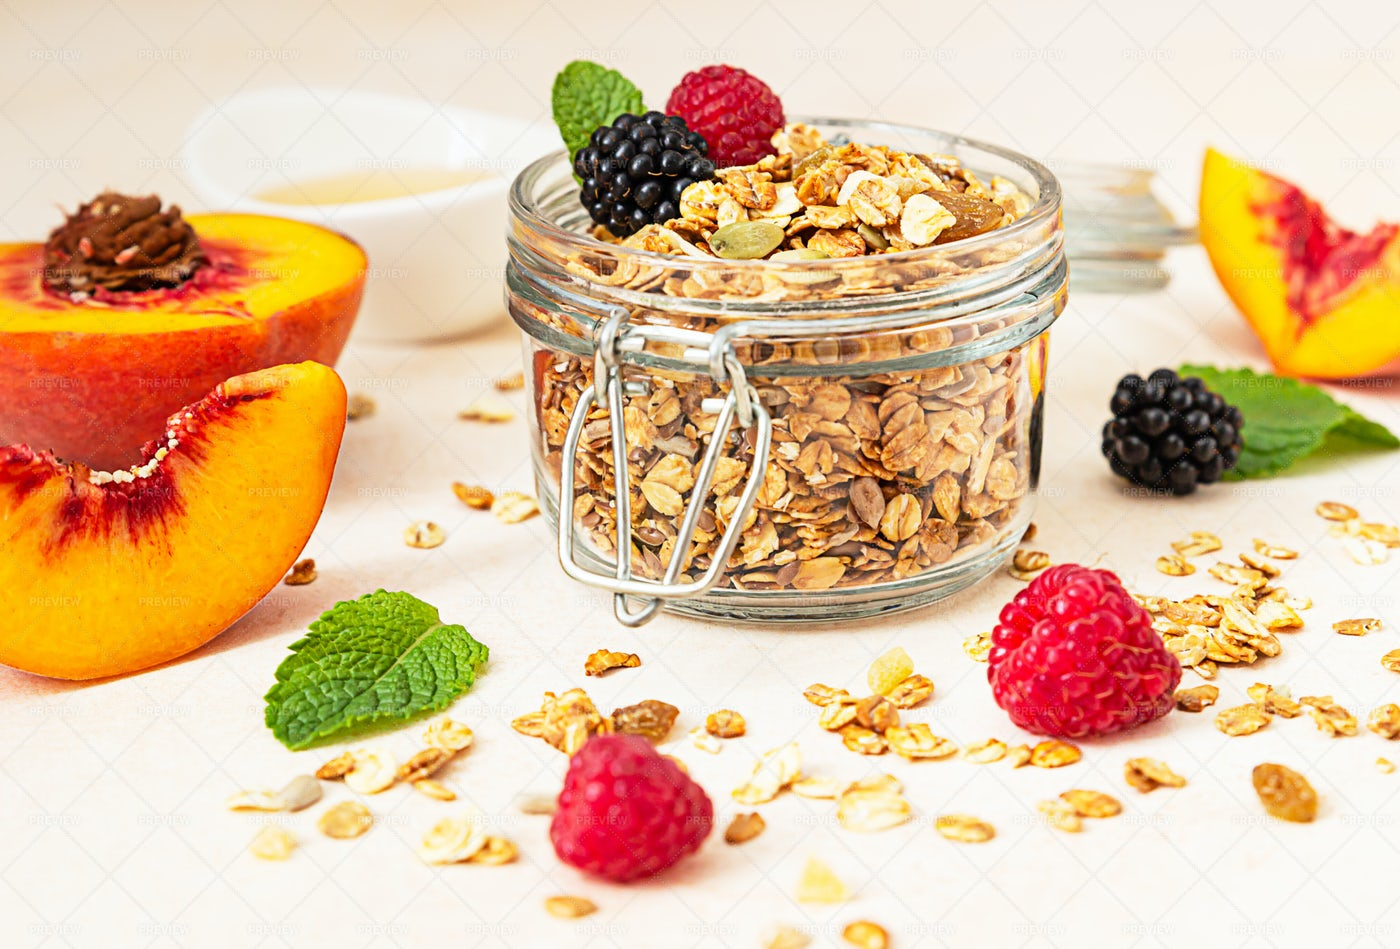 Homemade Granola In A Glass Jar: Stock Photos